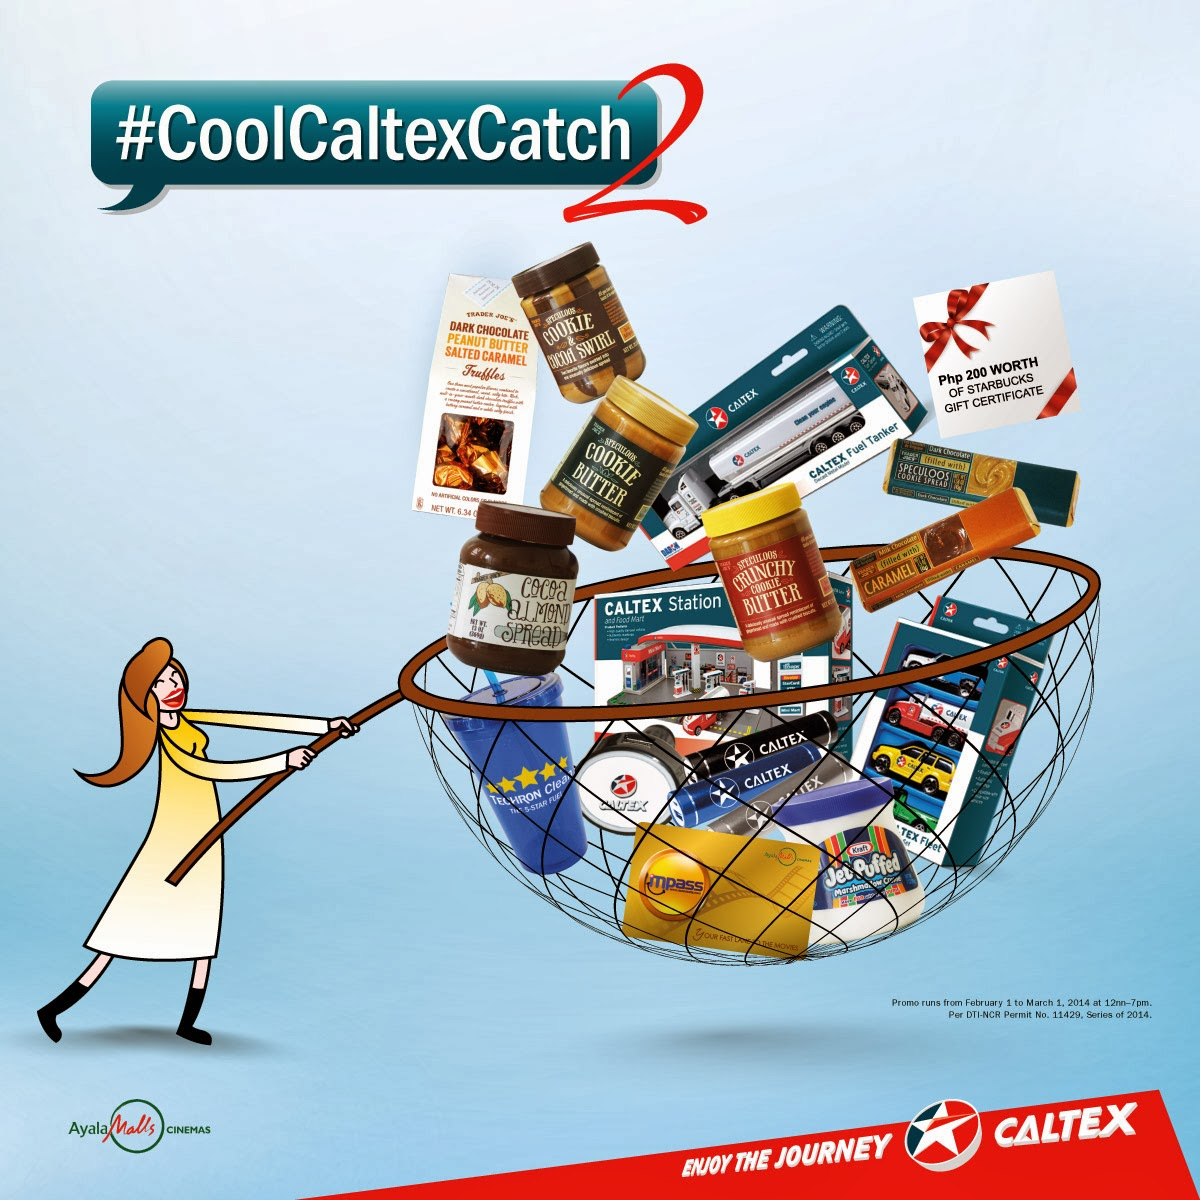 Fuel Up at Caltex for Instant Cool Catch